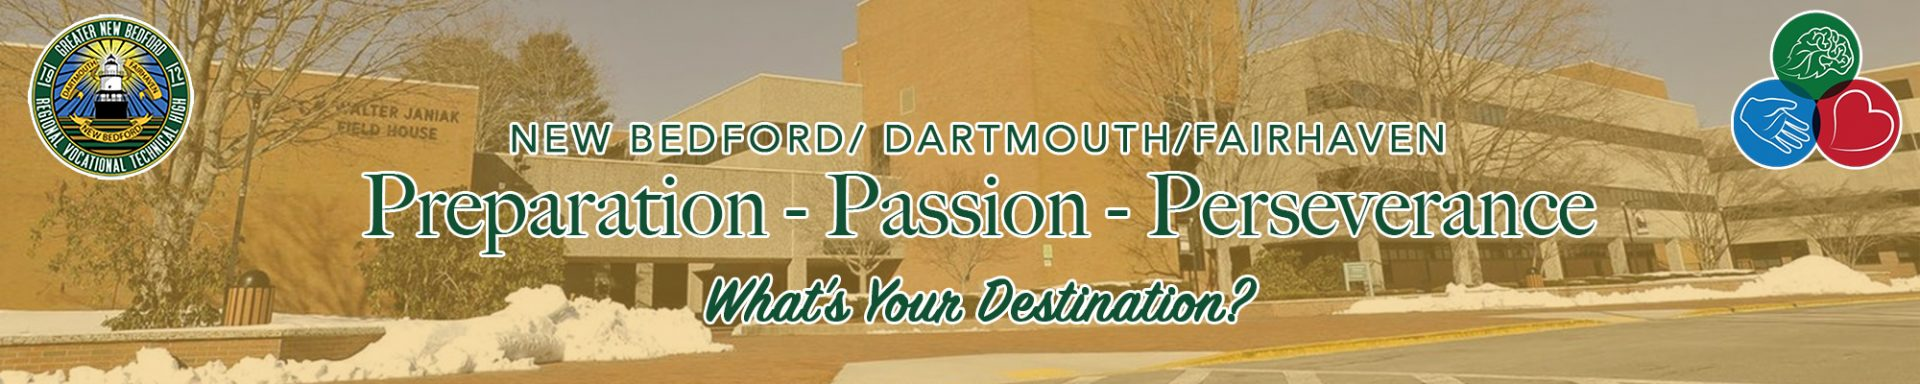 """header image with a yellow tinted photo of GNBVT with the school's logo and Artisan Imprint in the corners with the text of """"NEW BEDFORD/ DARTMOUTH/FAIRHAVEN Preparation - Passion - Perseverance What's Your Destination?"""""""